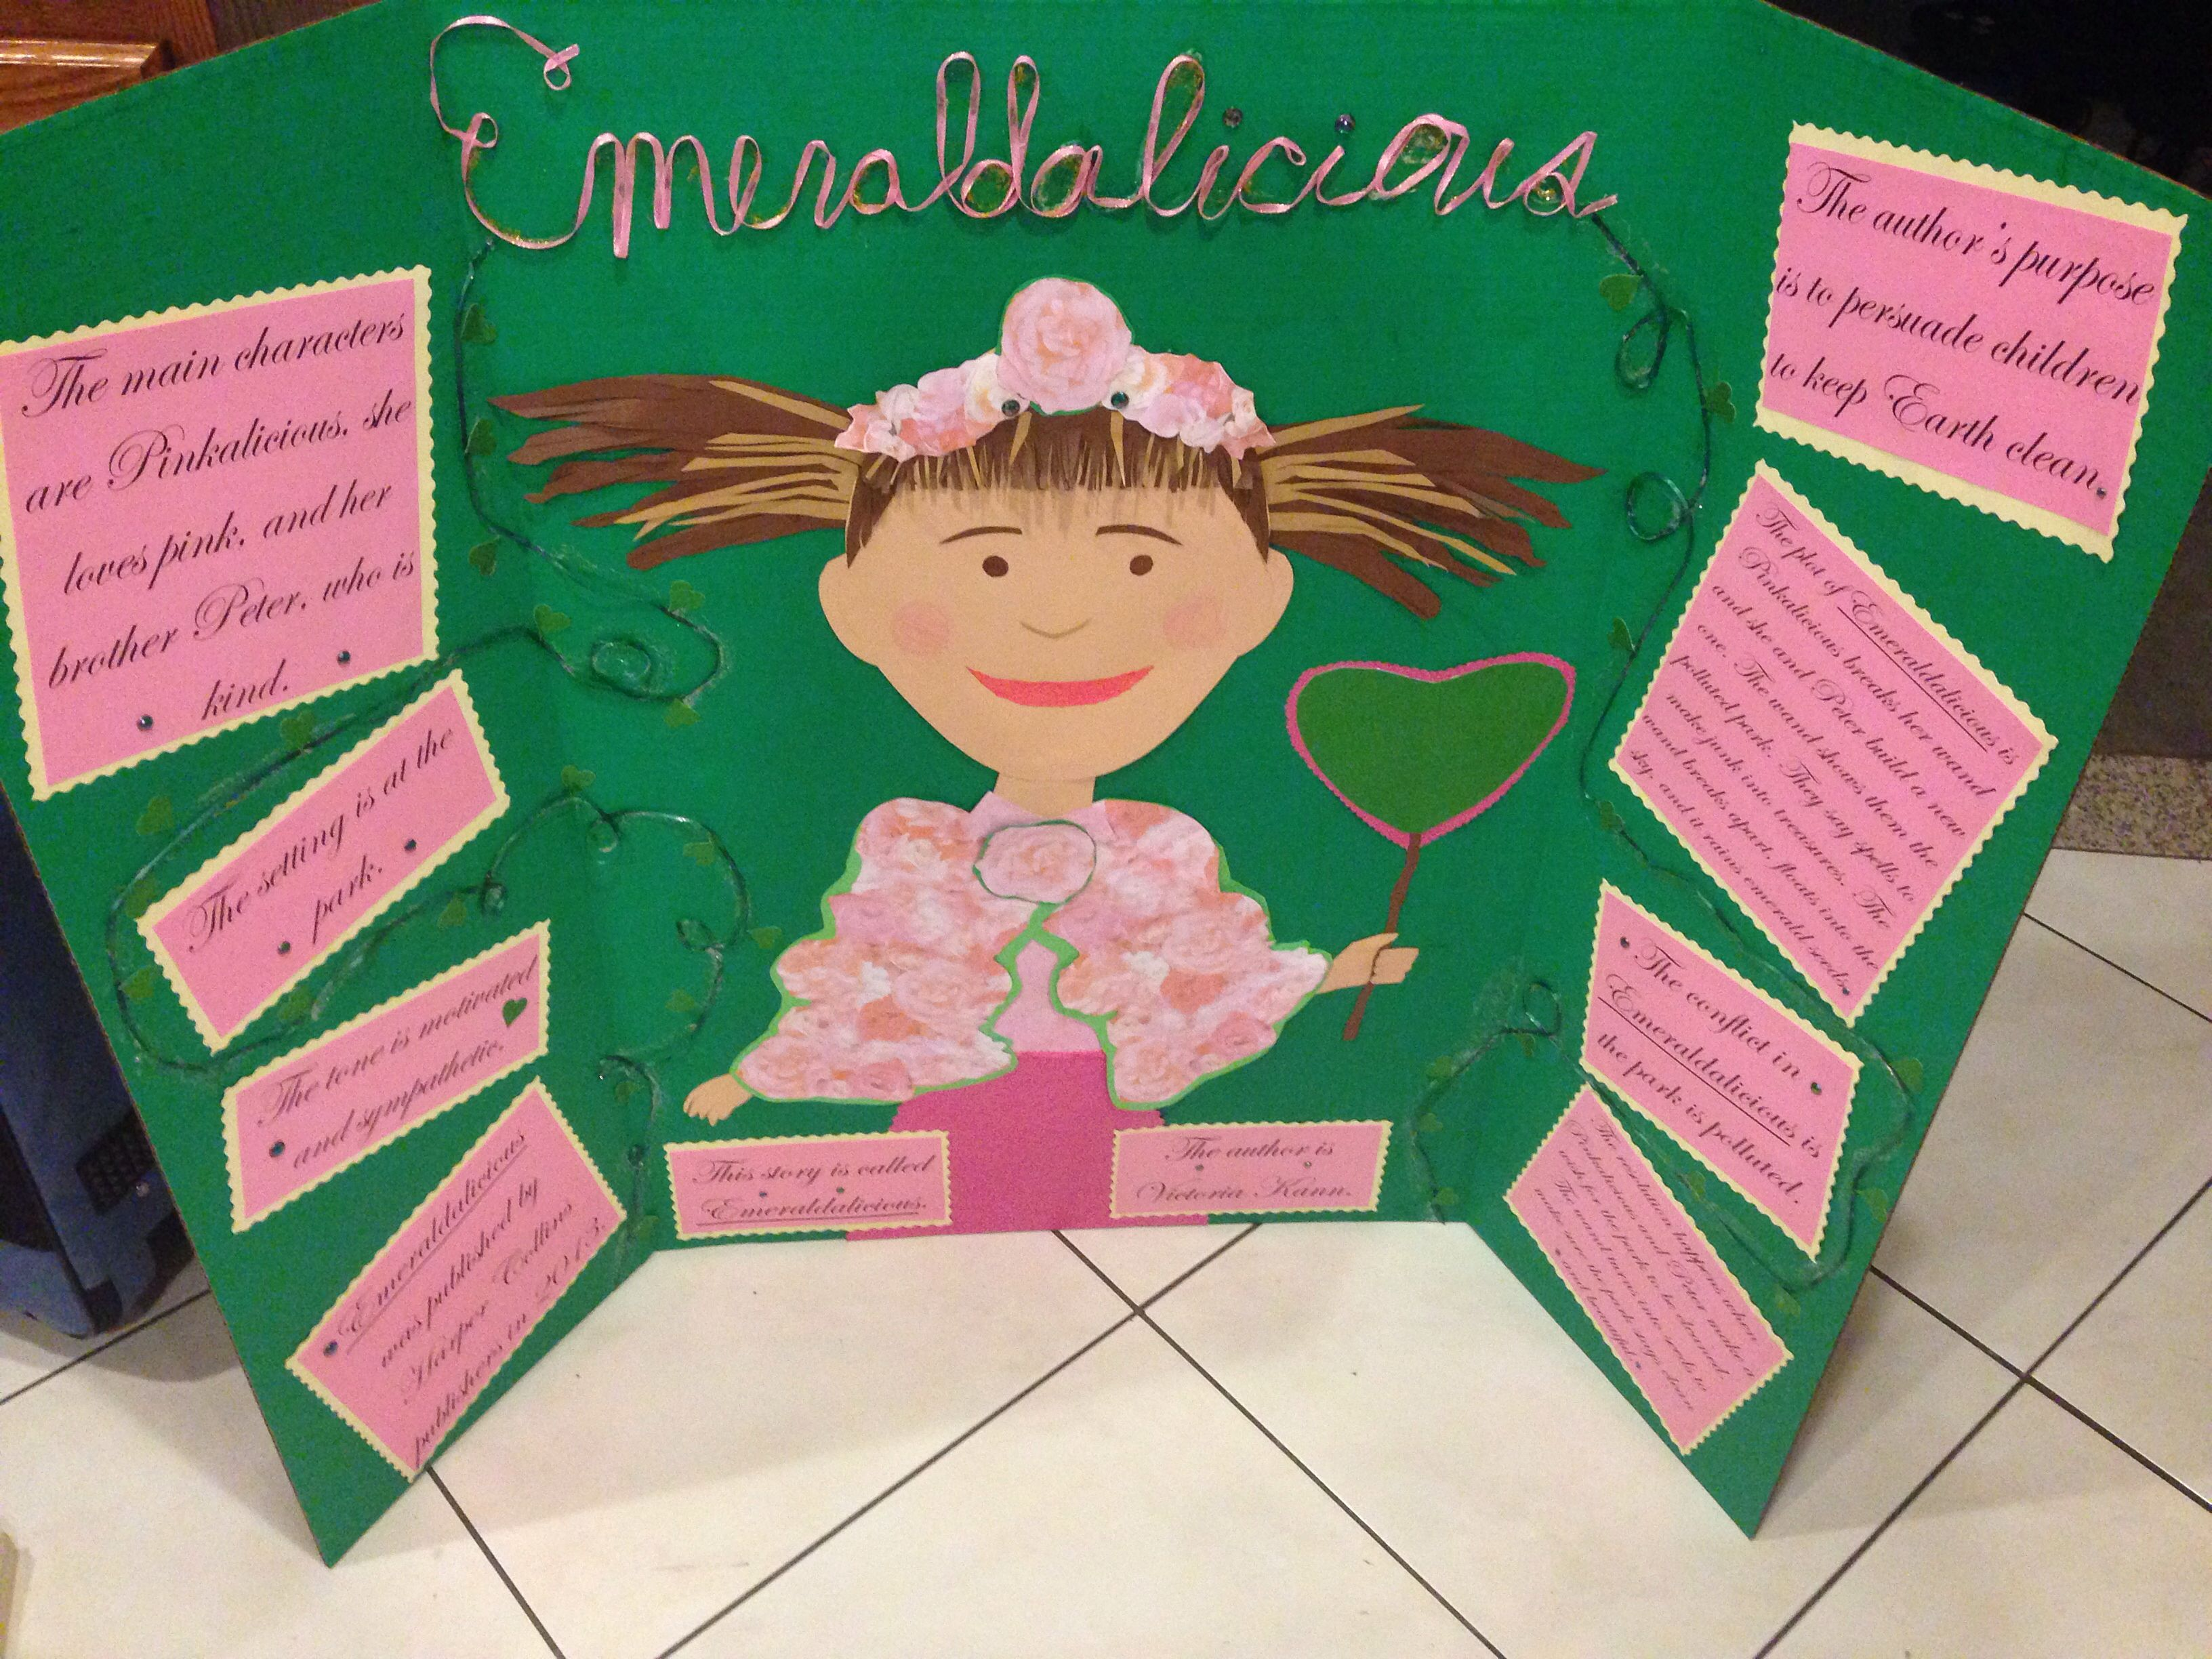 my little sisters 3rd grade book report project for emeraldalicious turned out fantastic